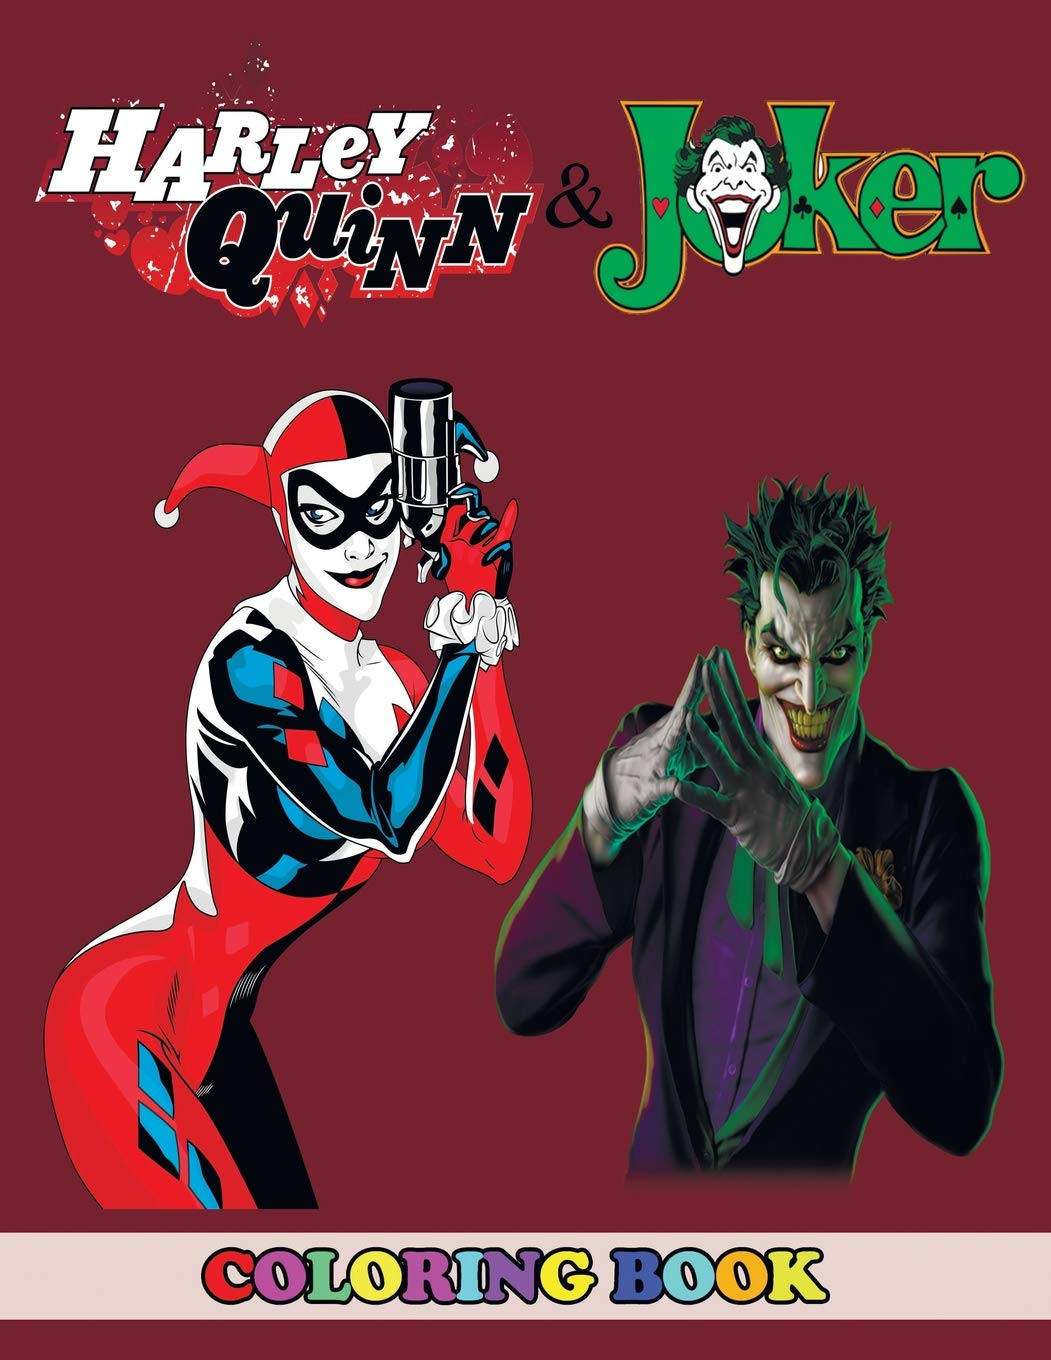 9d1e1217ad00 Harley Quinn and Joker Coloring Book  2 in 1 Coloring Book for Kids and  Adults